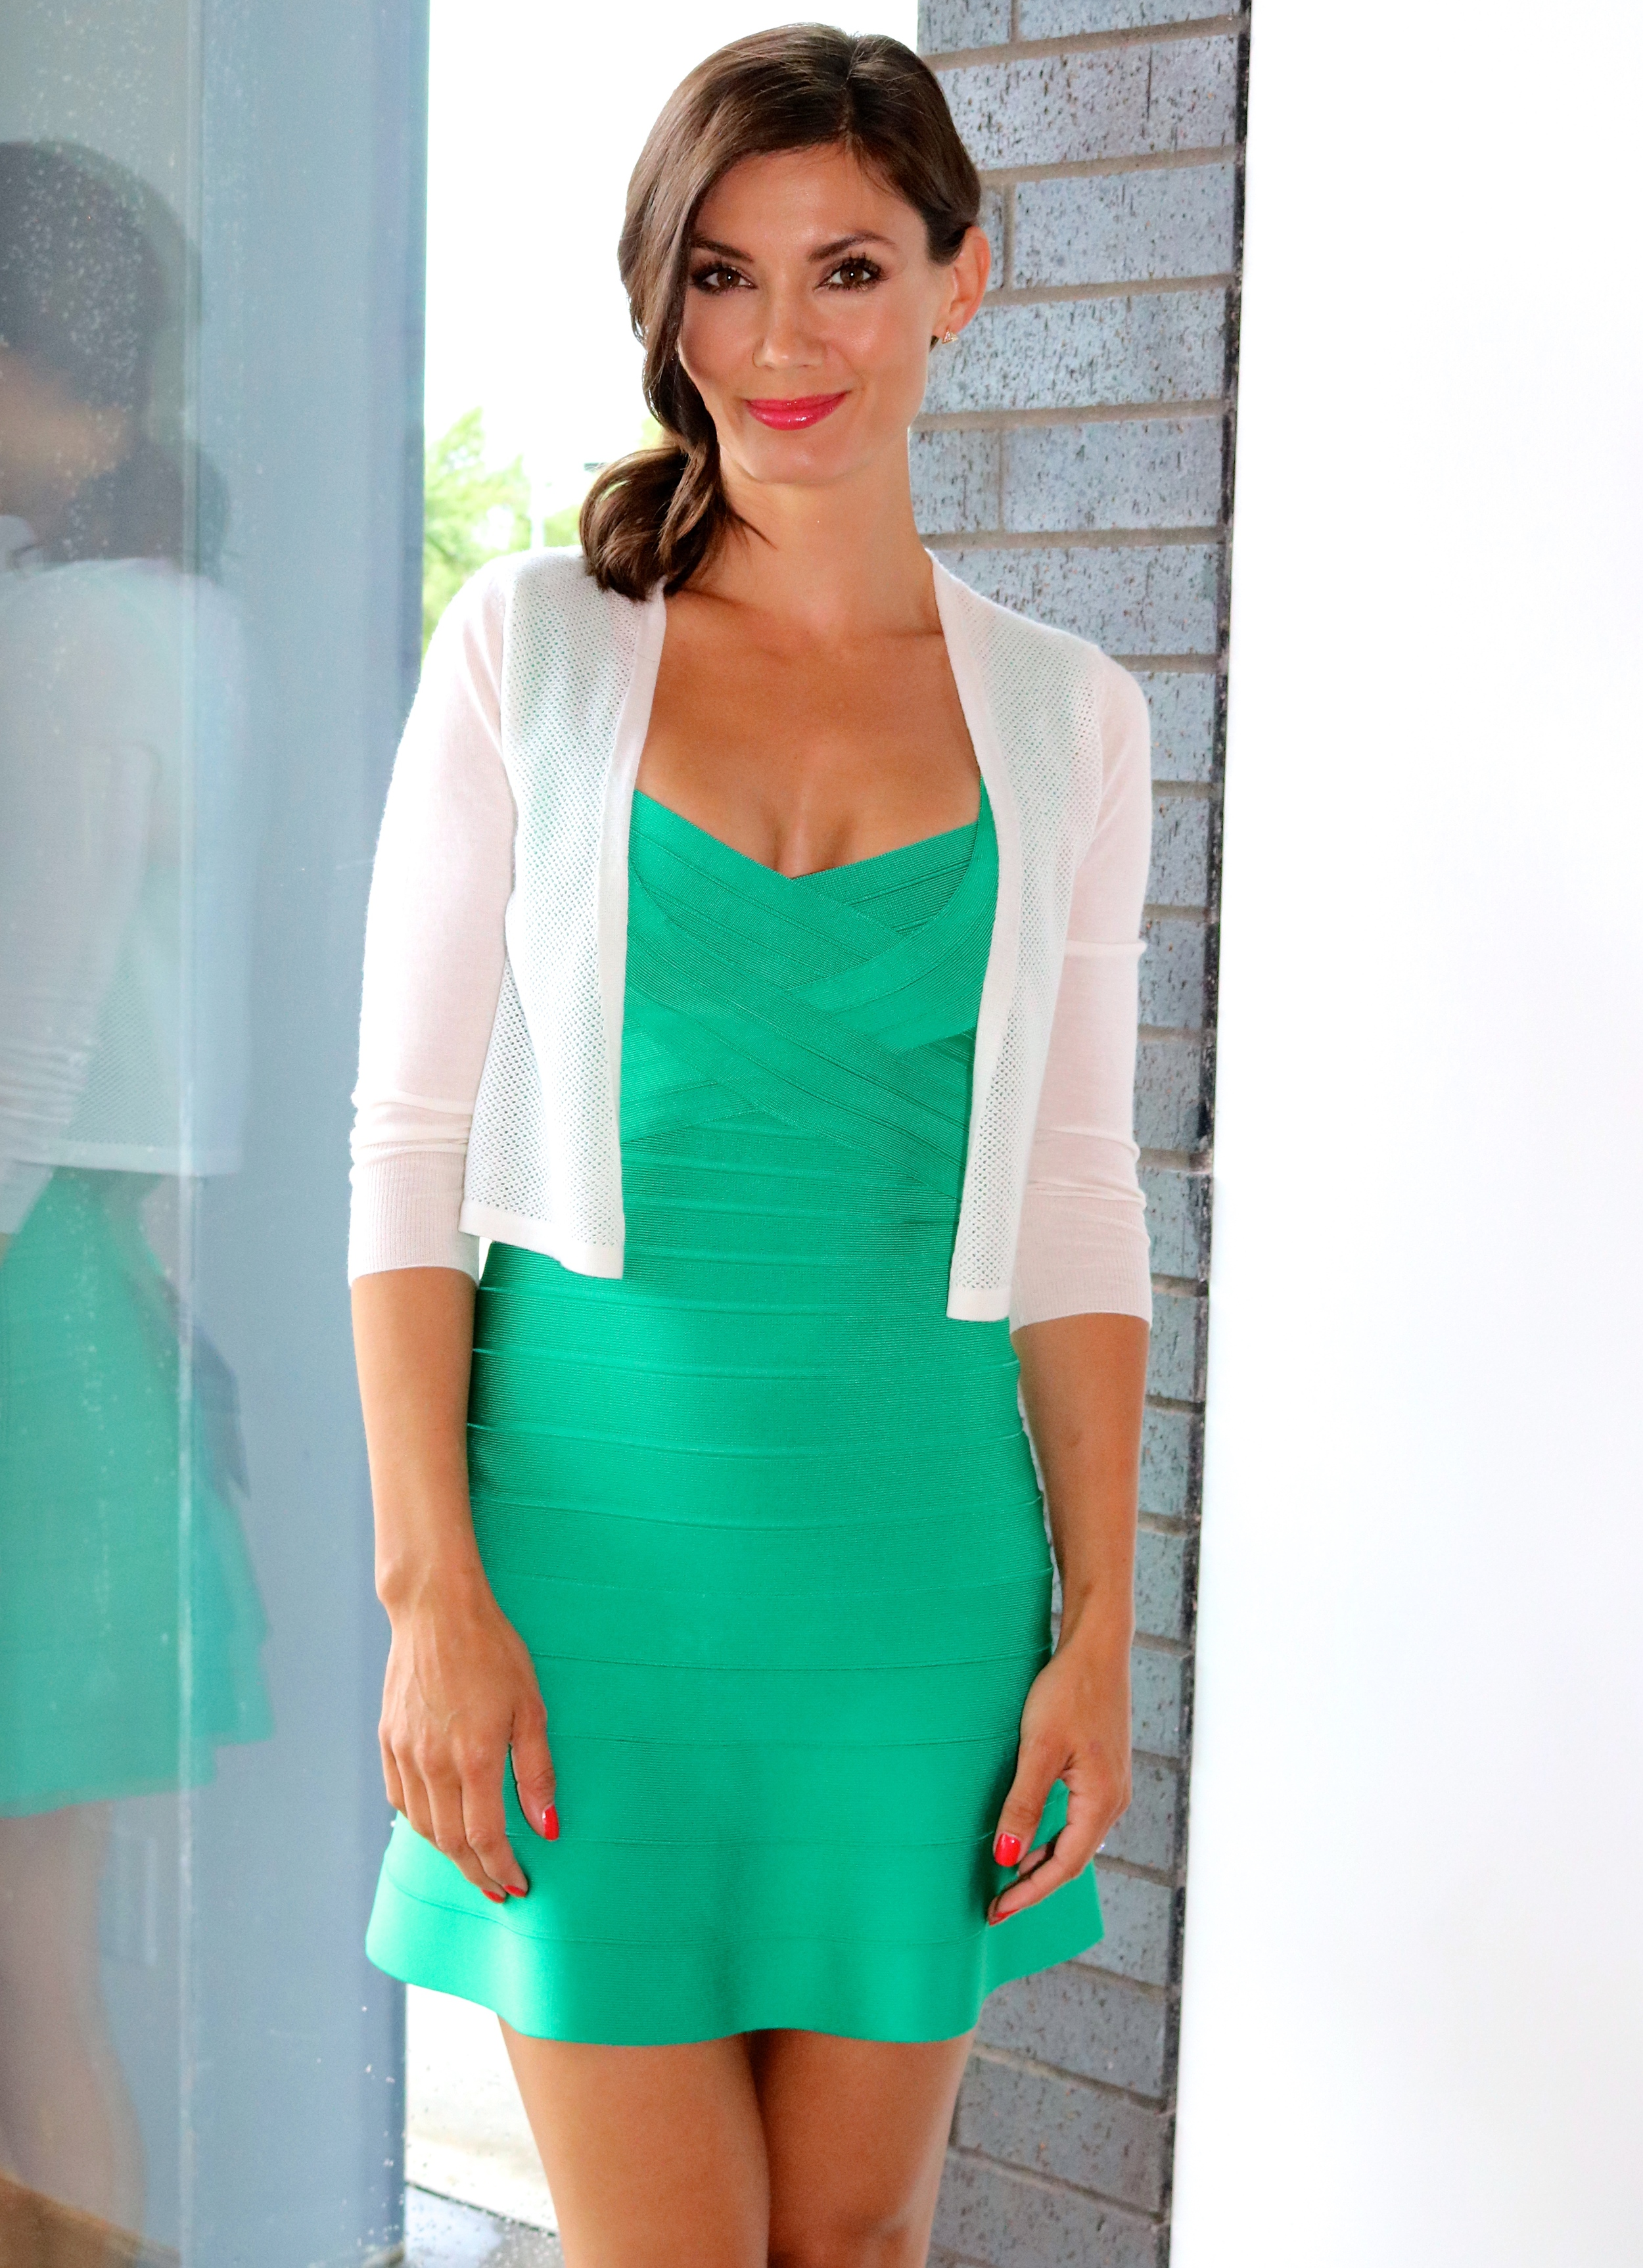 Hervé Dress in Green Opal Available In Store Only.  Christopher Fischer  Lace Stitch Cardigan  Available Online